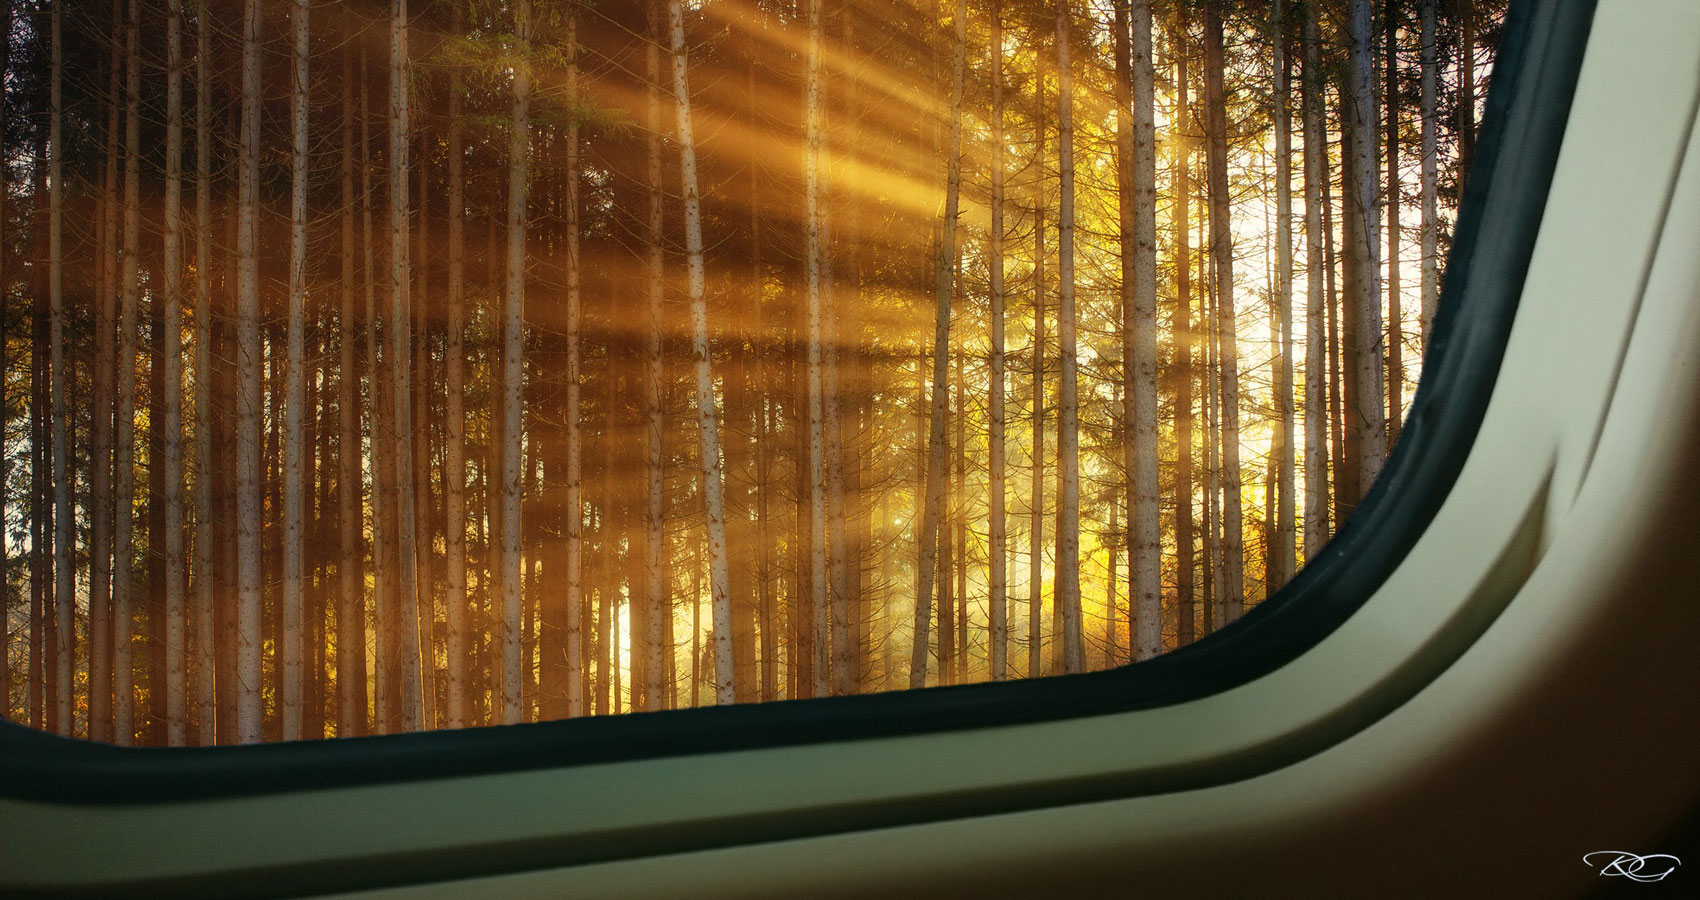 Thoughts From A Train by Eoghan Lyng at Spillwords.com